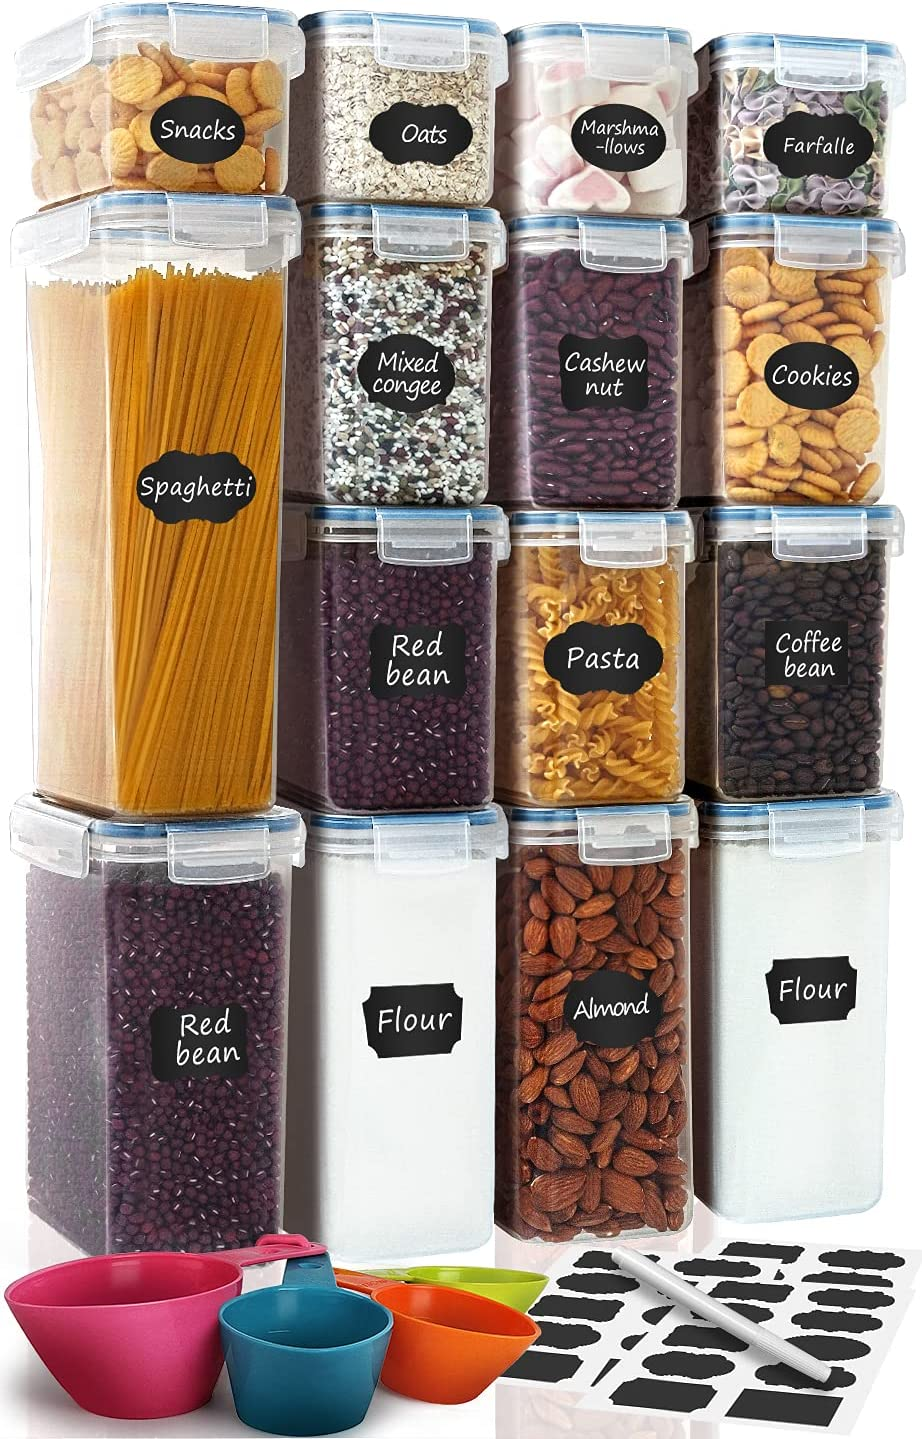 Airtight Food Storage Containers 15-Piece Set, Kitchen & Pantry Organization, BPA Free Plastic Containers with Lids, for Cereal, Flour, Sugar, Baking Supplies, Labels, Marker & Measuring Cups, Blue